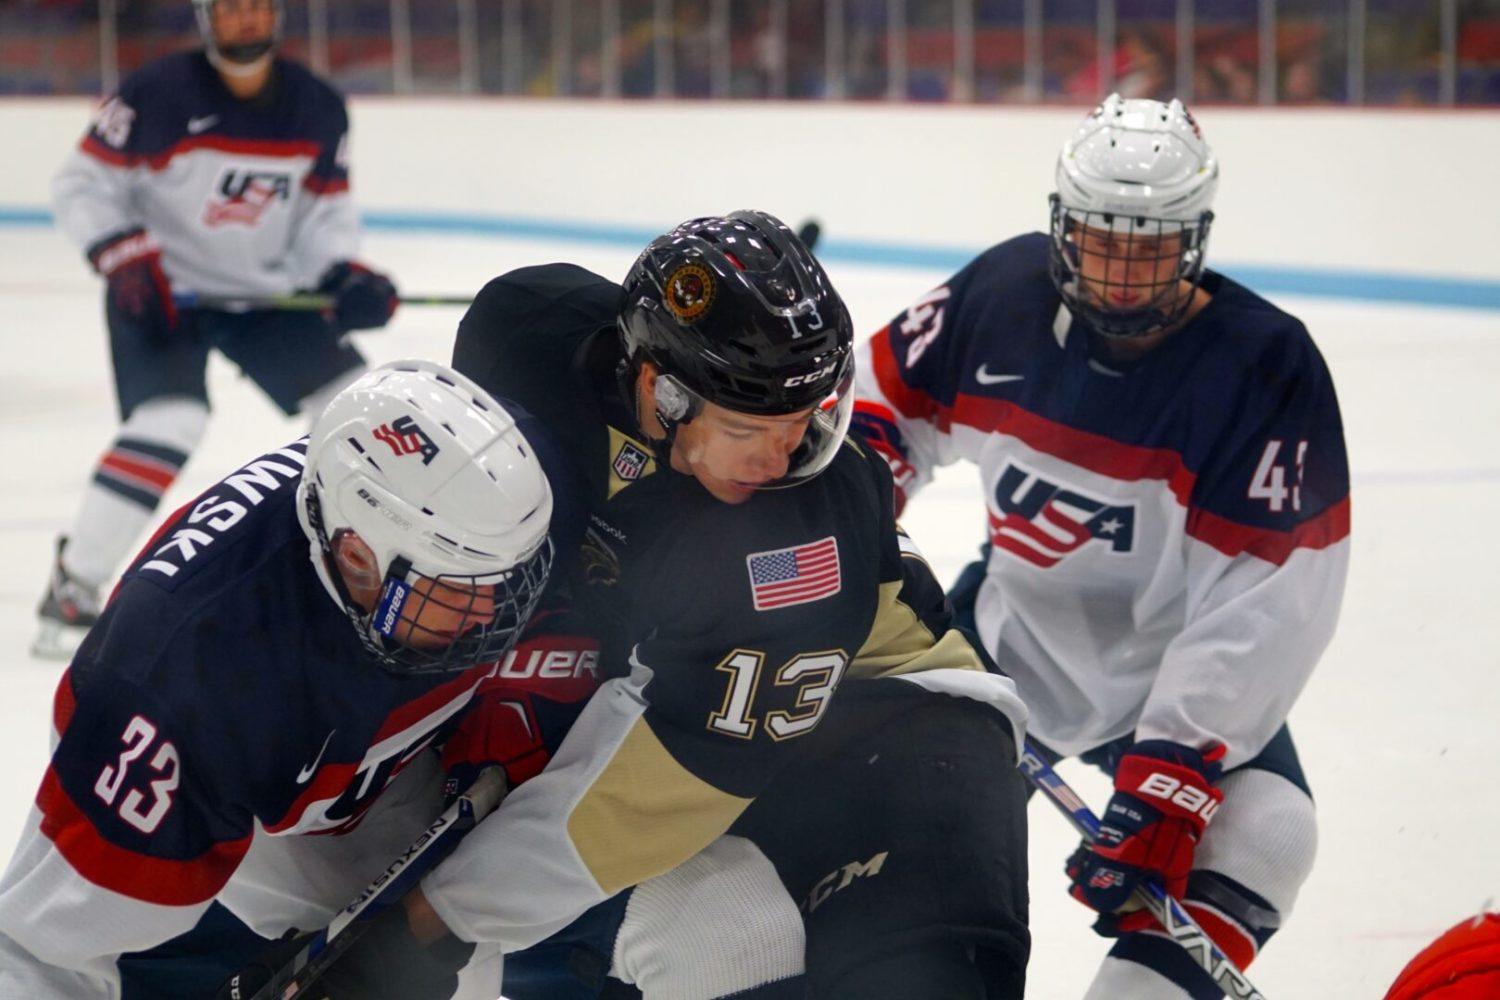 No. 13 Collin Adams battles for the puck against Team USA.